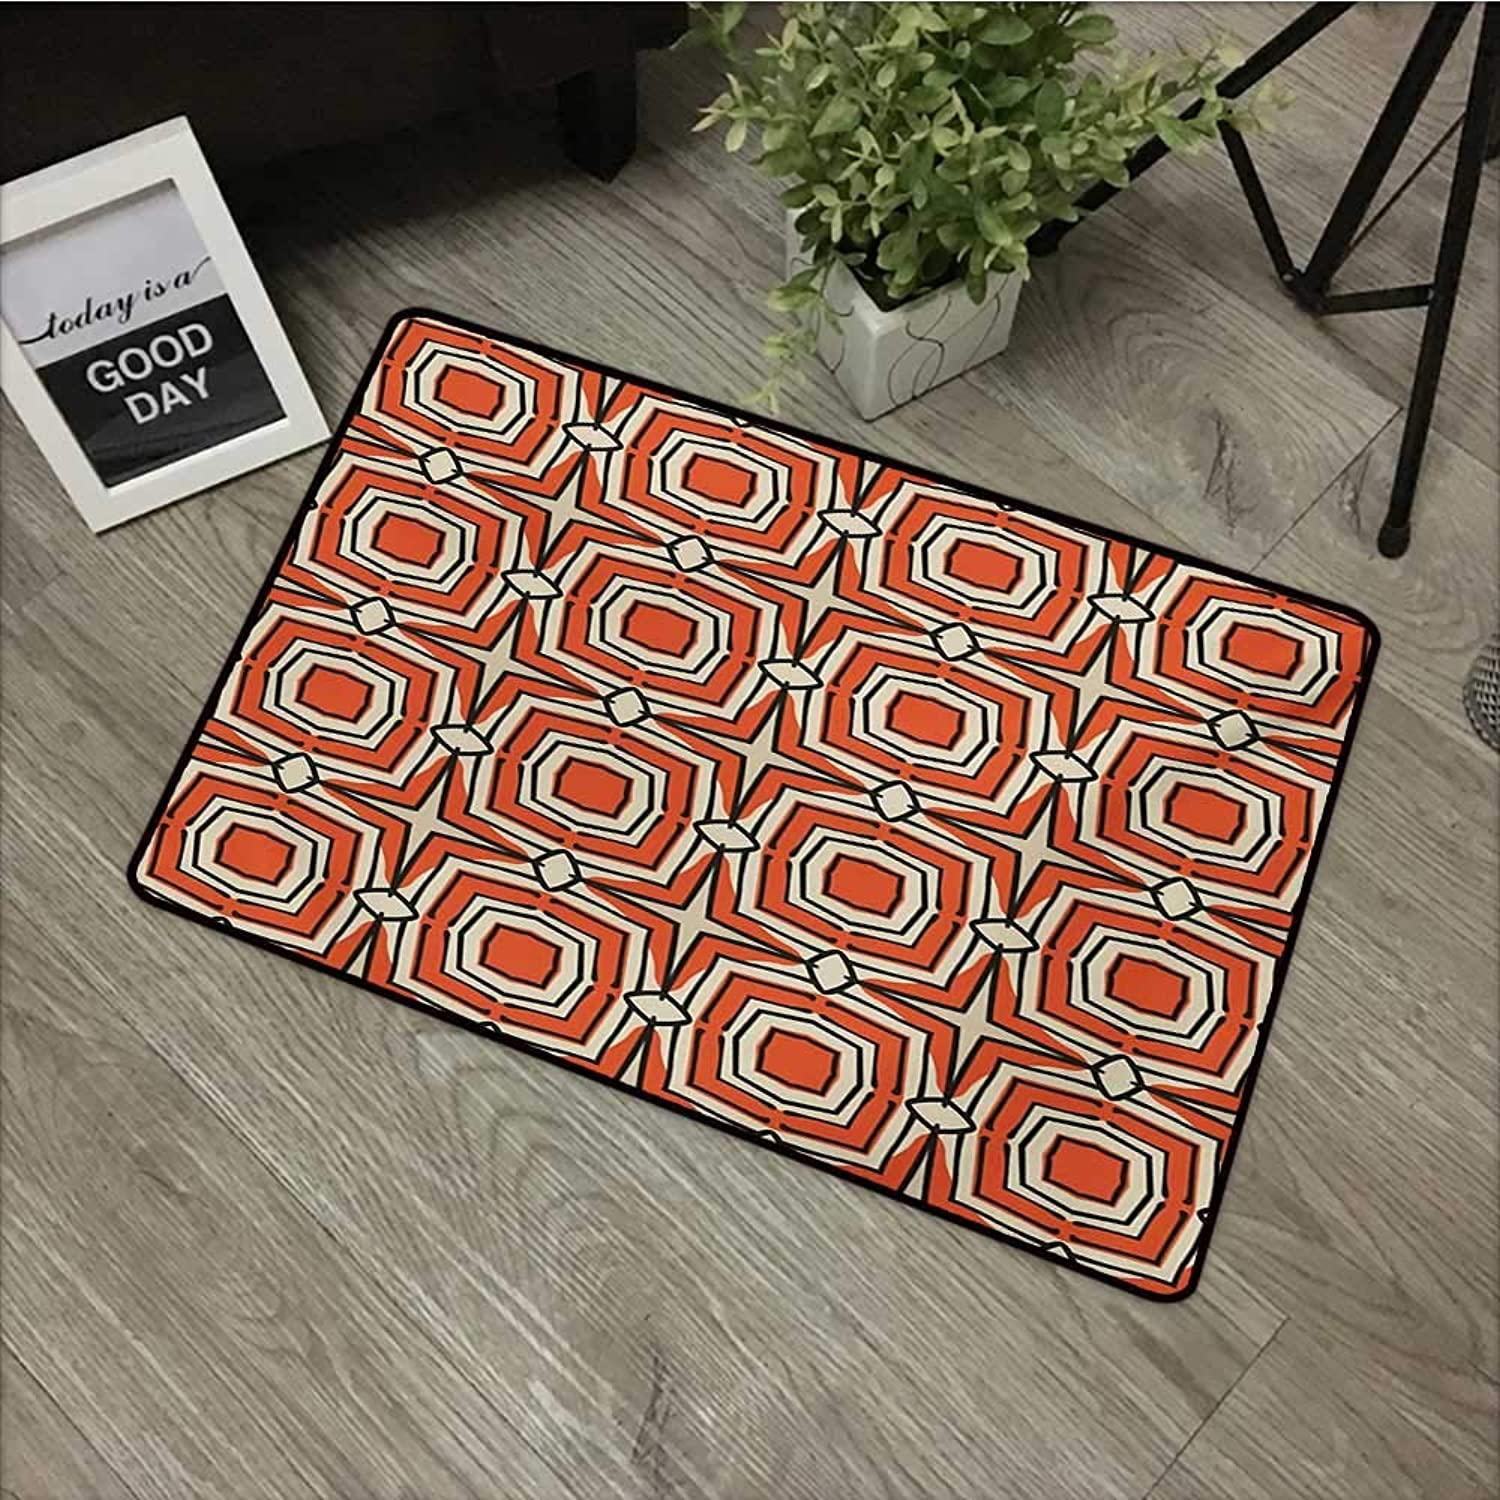 Bathroom Anti-Slip Door mat W35 x L59 INCH Geometric,Squares and Rhombuses with Bullseye Pattern Abstract Warm colord Shapes,Burnt Sienna Beige with Non-Slip Backing Door Mat Carpet